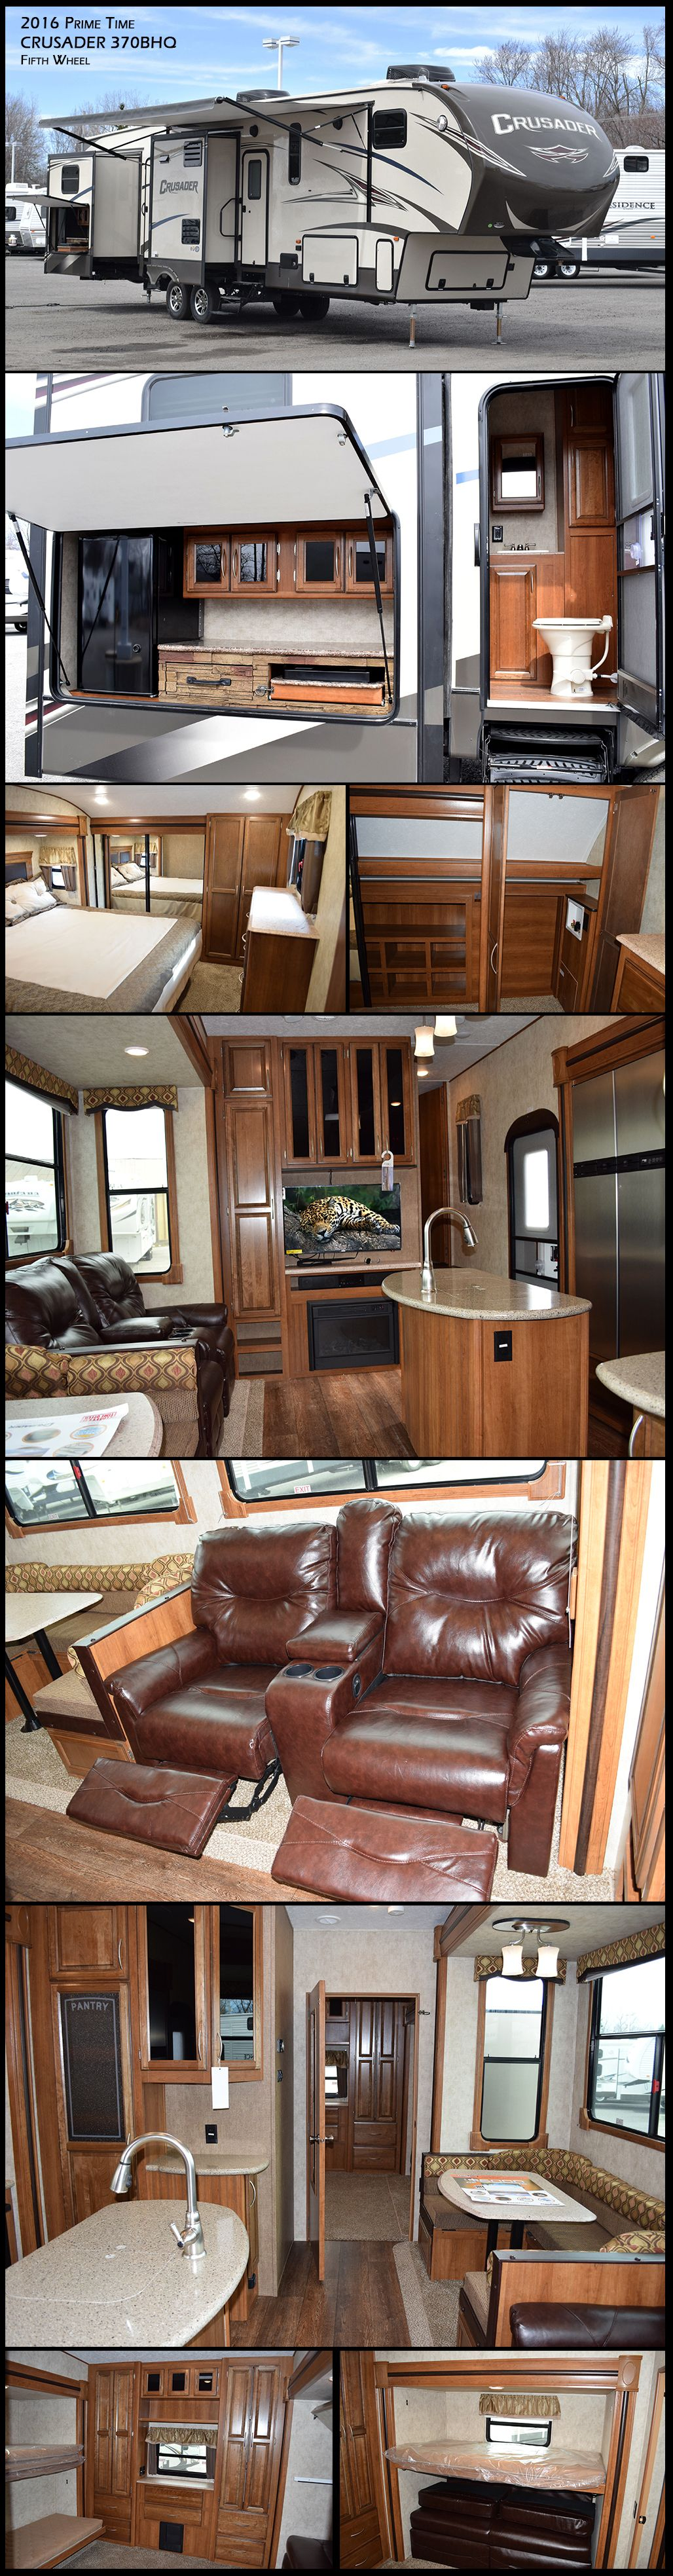 You Will Find Plenty Of Space In The 2016 Crusader 370bhq Fifth